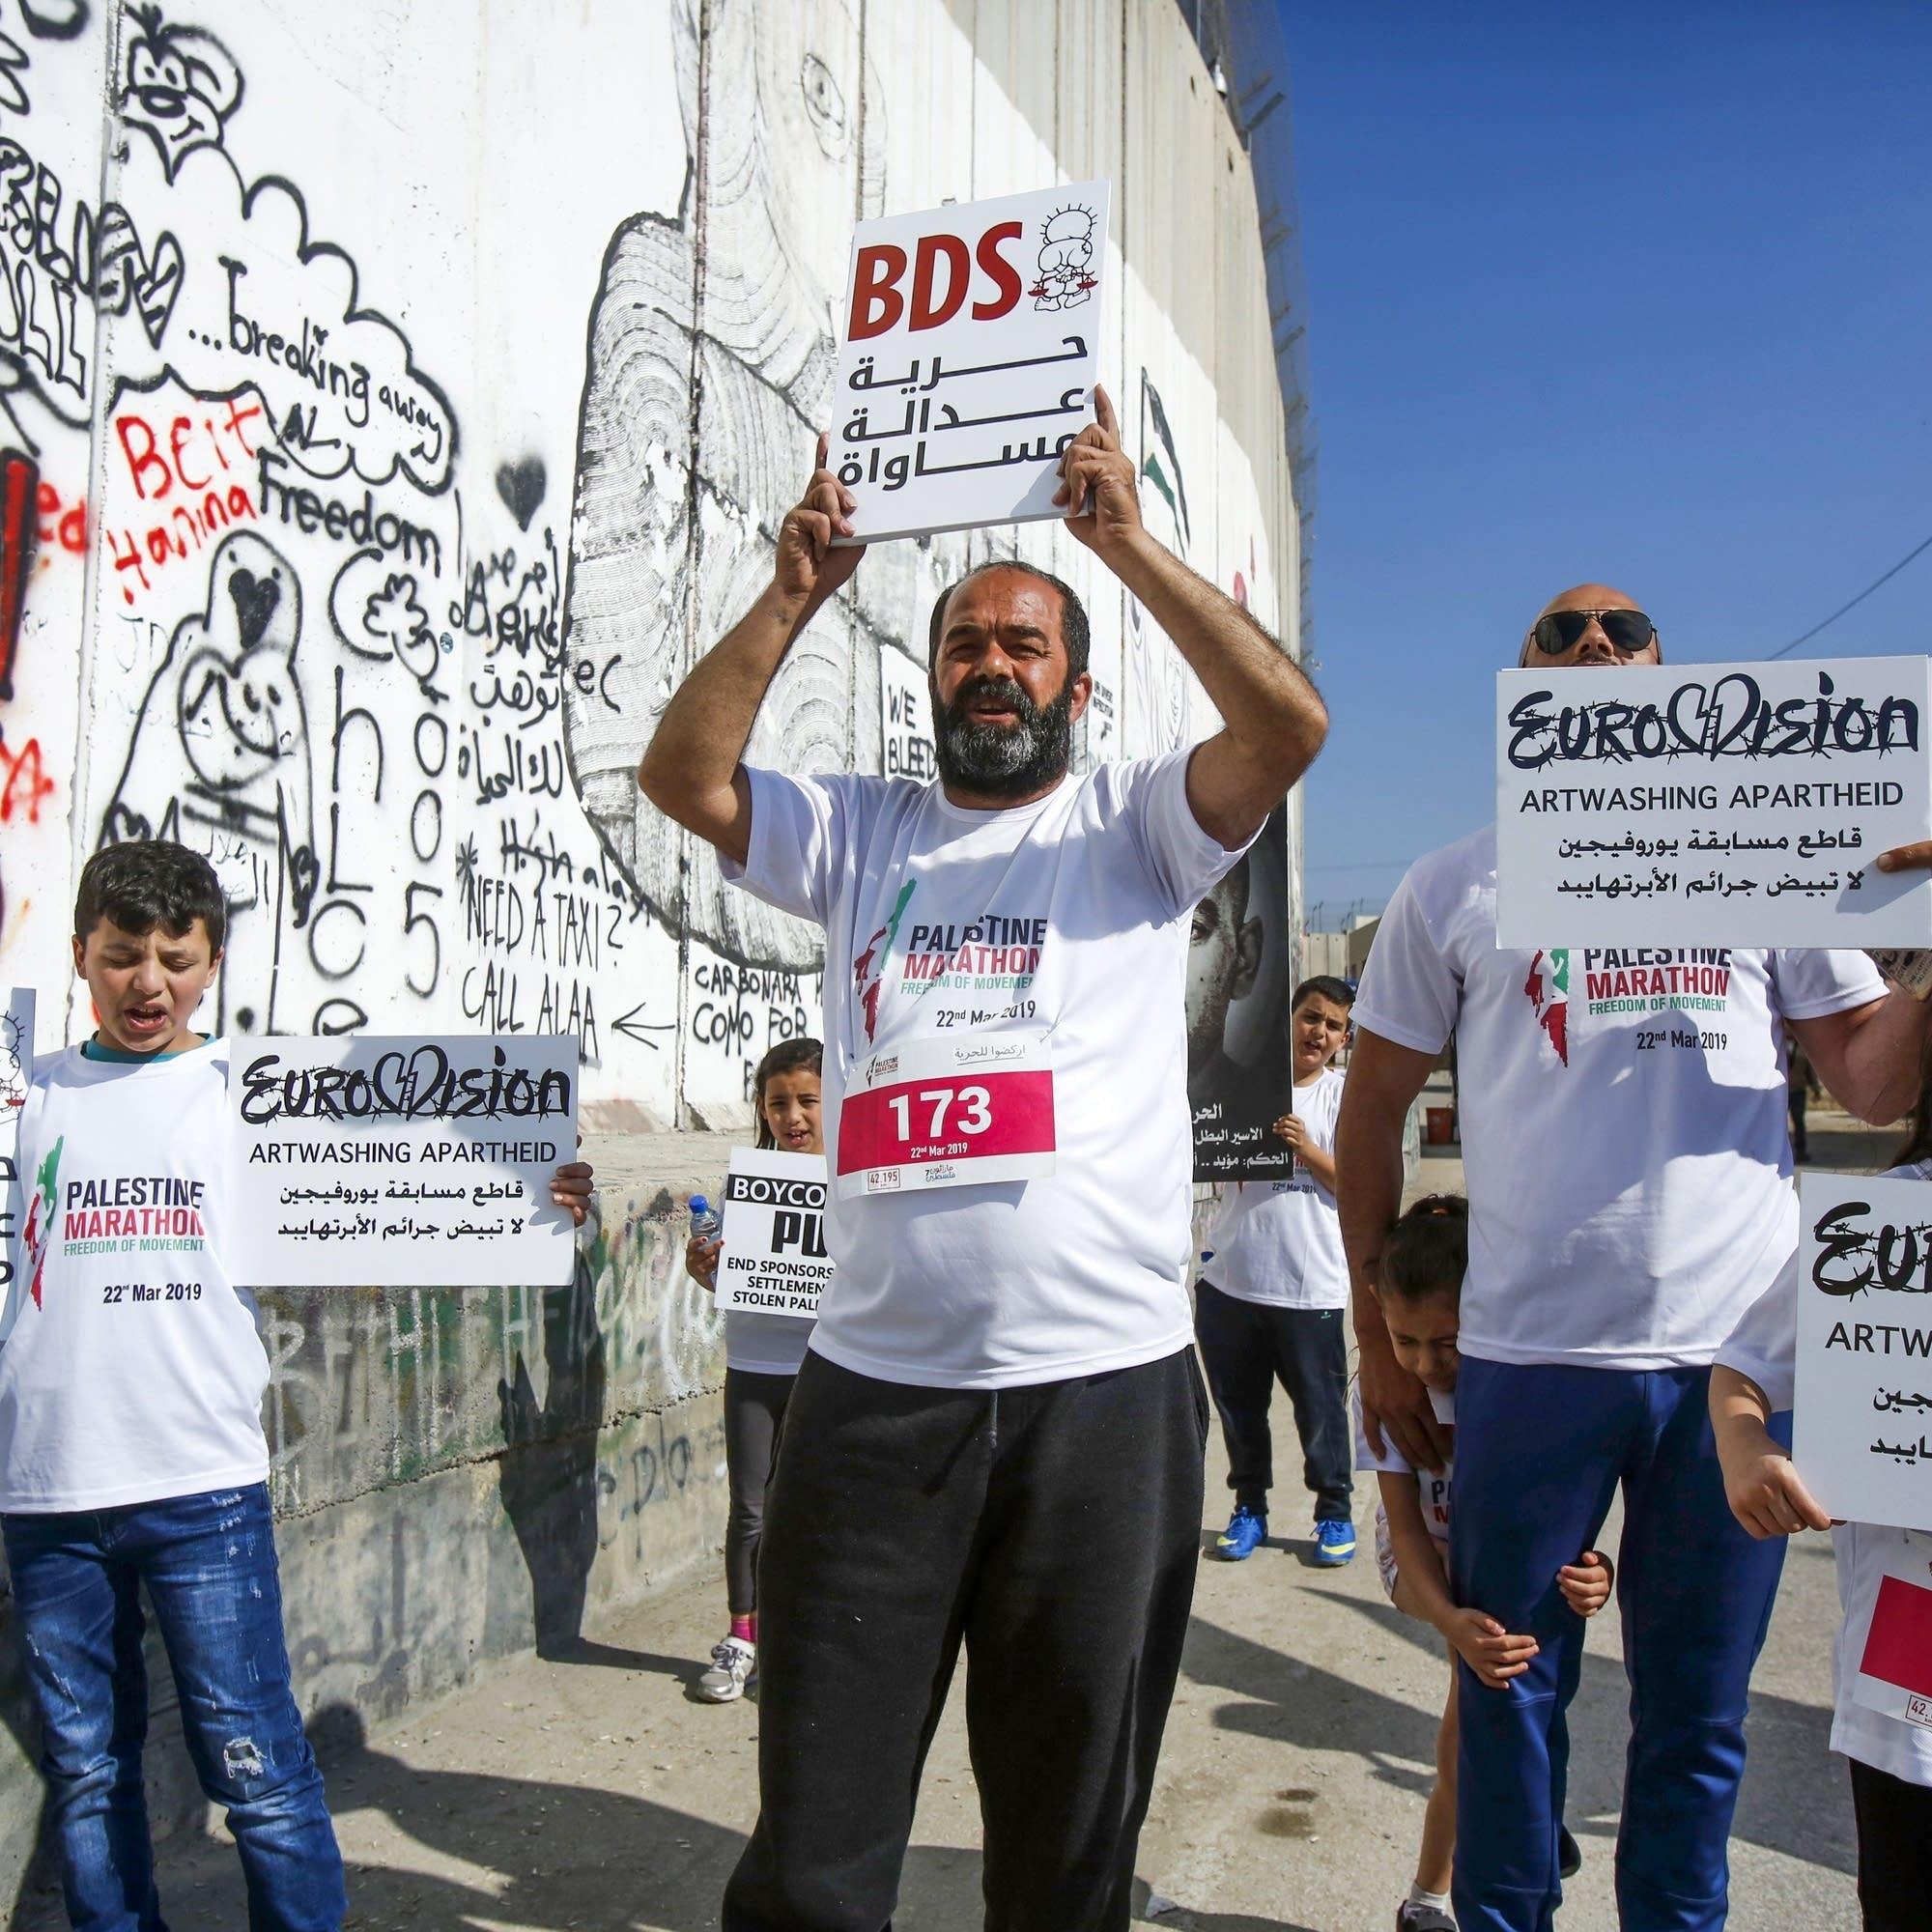 Protesters calling for the boycott of Eurovision.